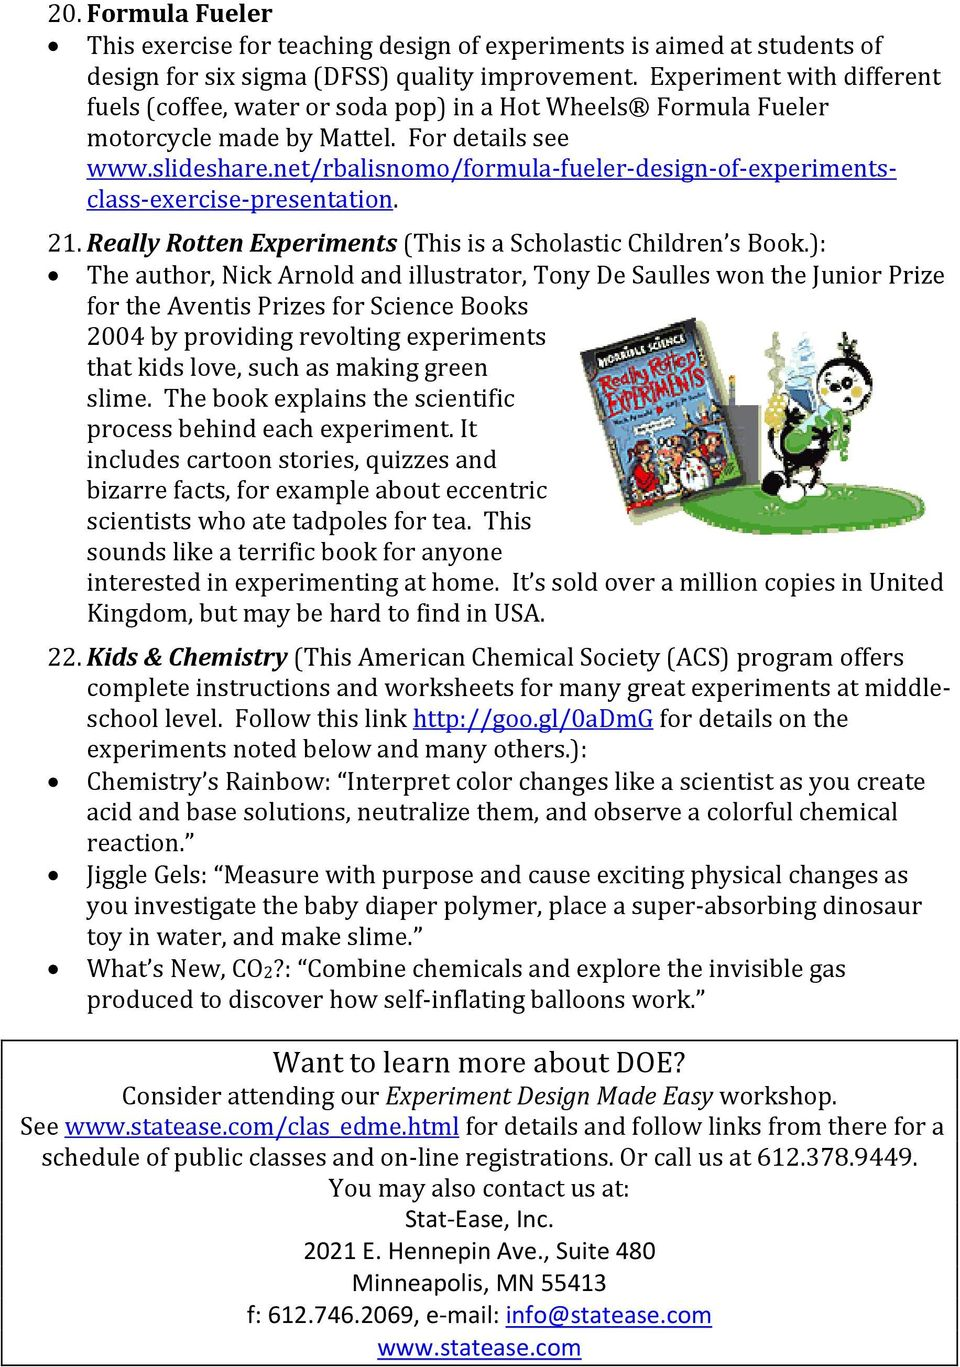 net/rbalisnomo/formula-fueler-design-of-experimentsclass-exercise-presentation. 21. Really Rotten Experiments (This is a Scholastic Children s Book.